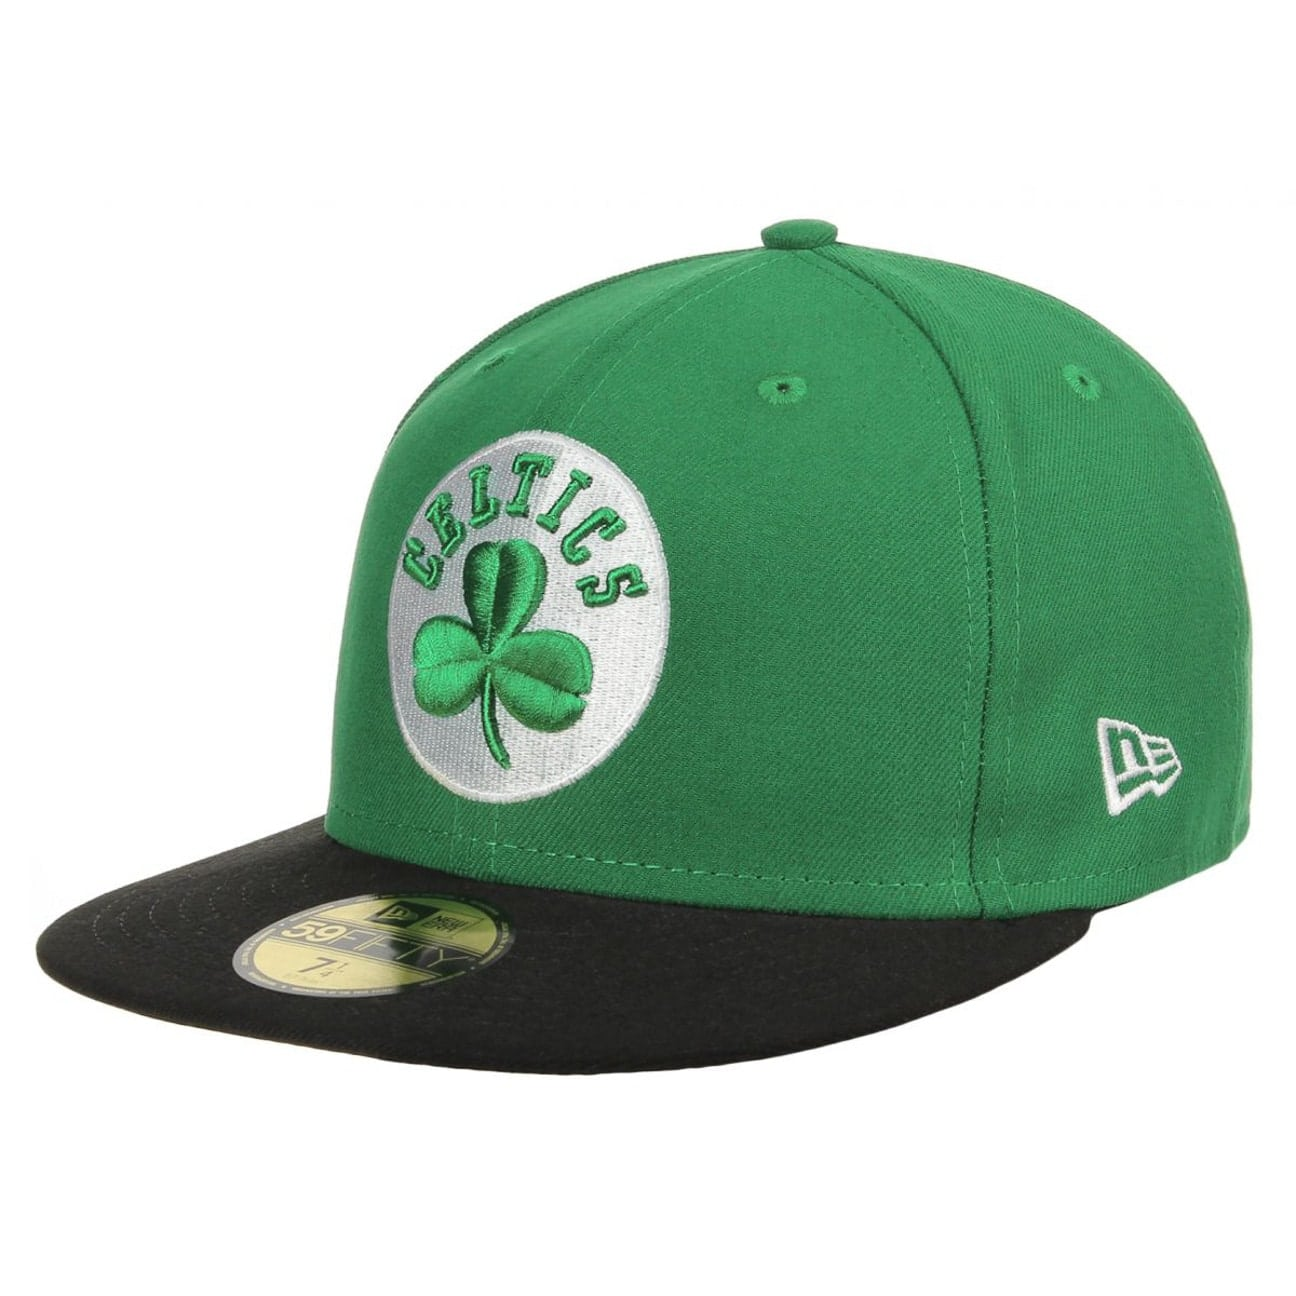 how to break in polyester 59fifty hat